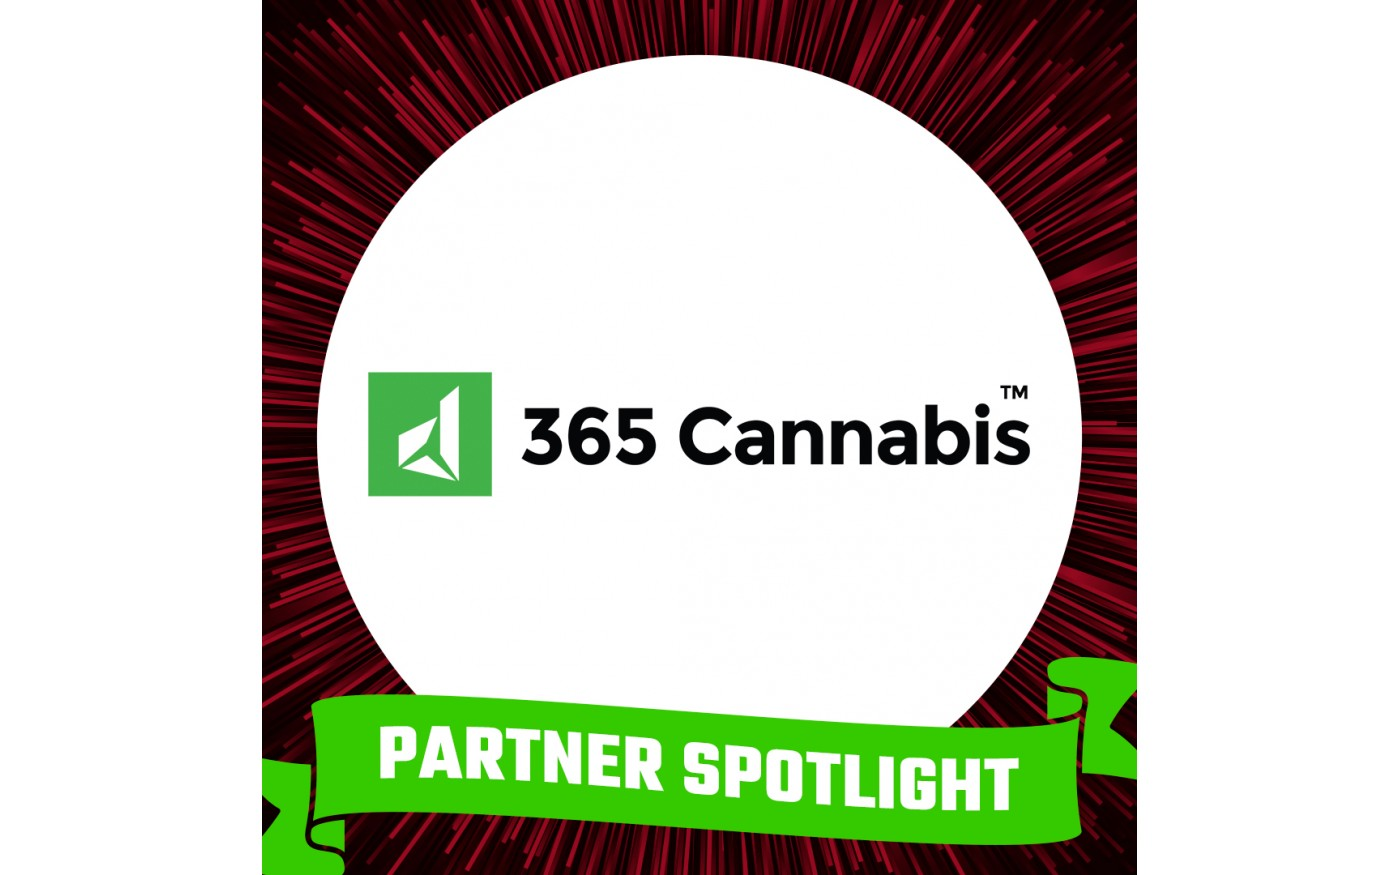 graphic with partner spotlight: 365 Cannabis